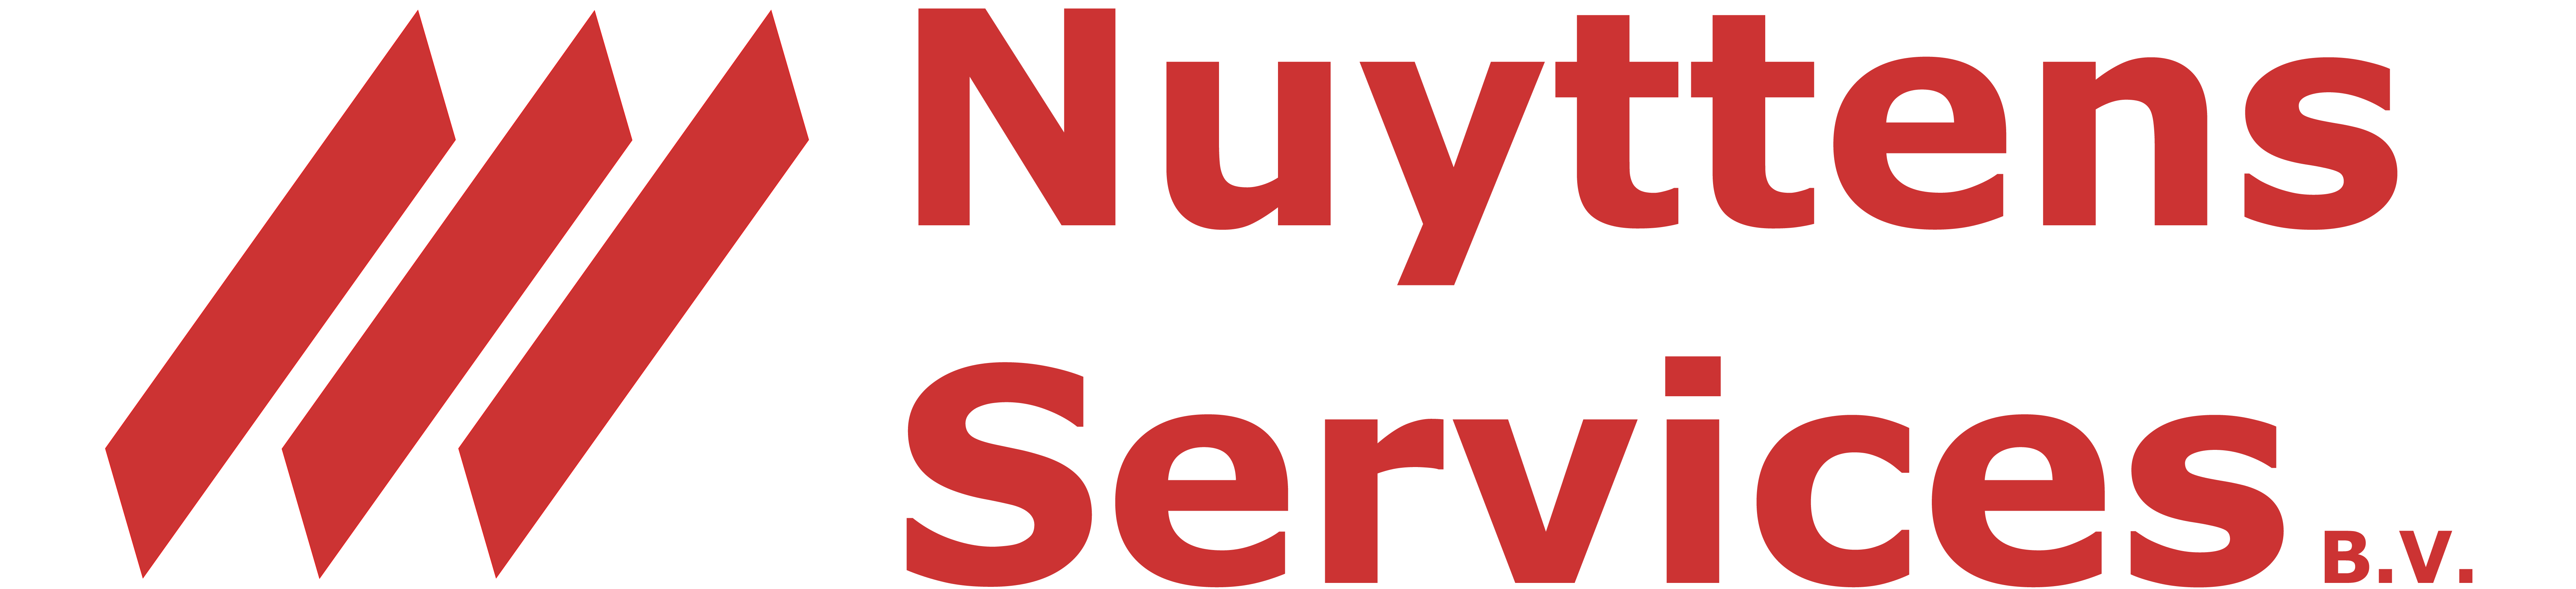 Nuyttens Services